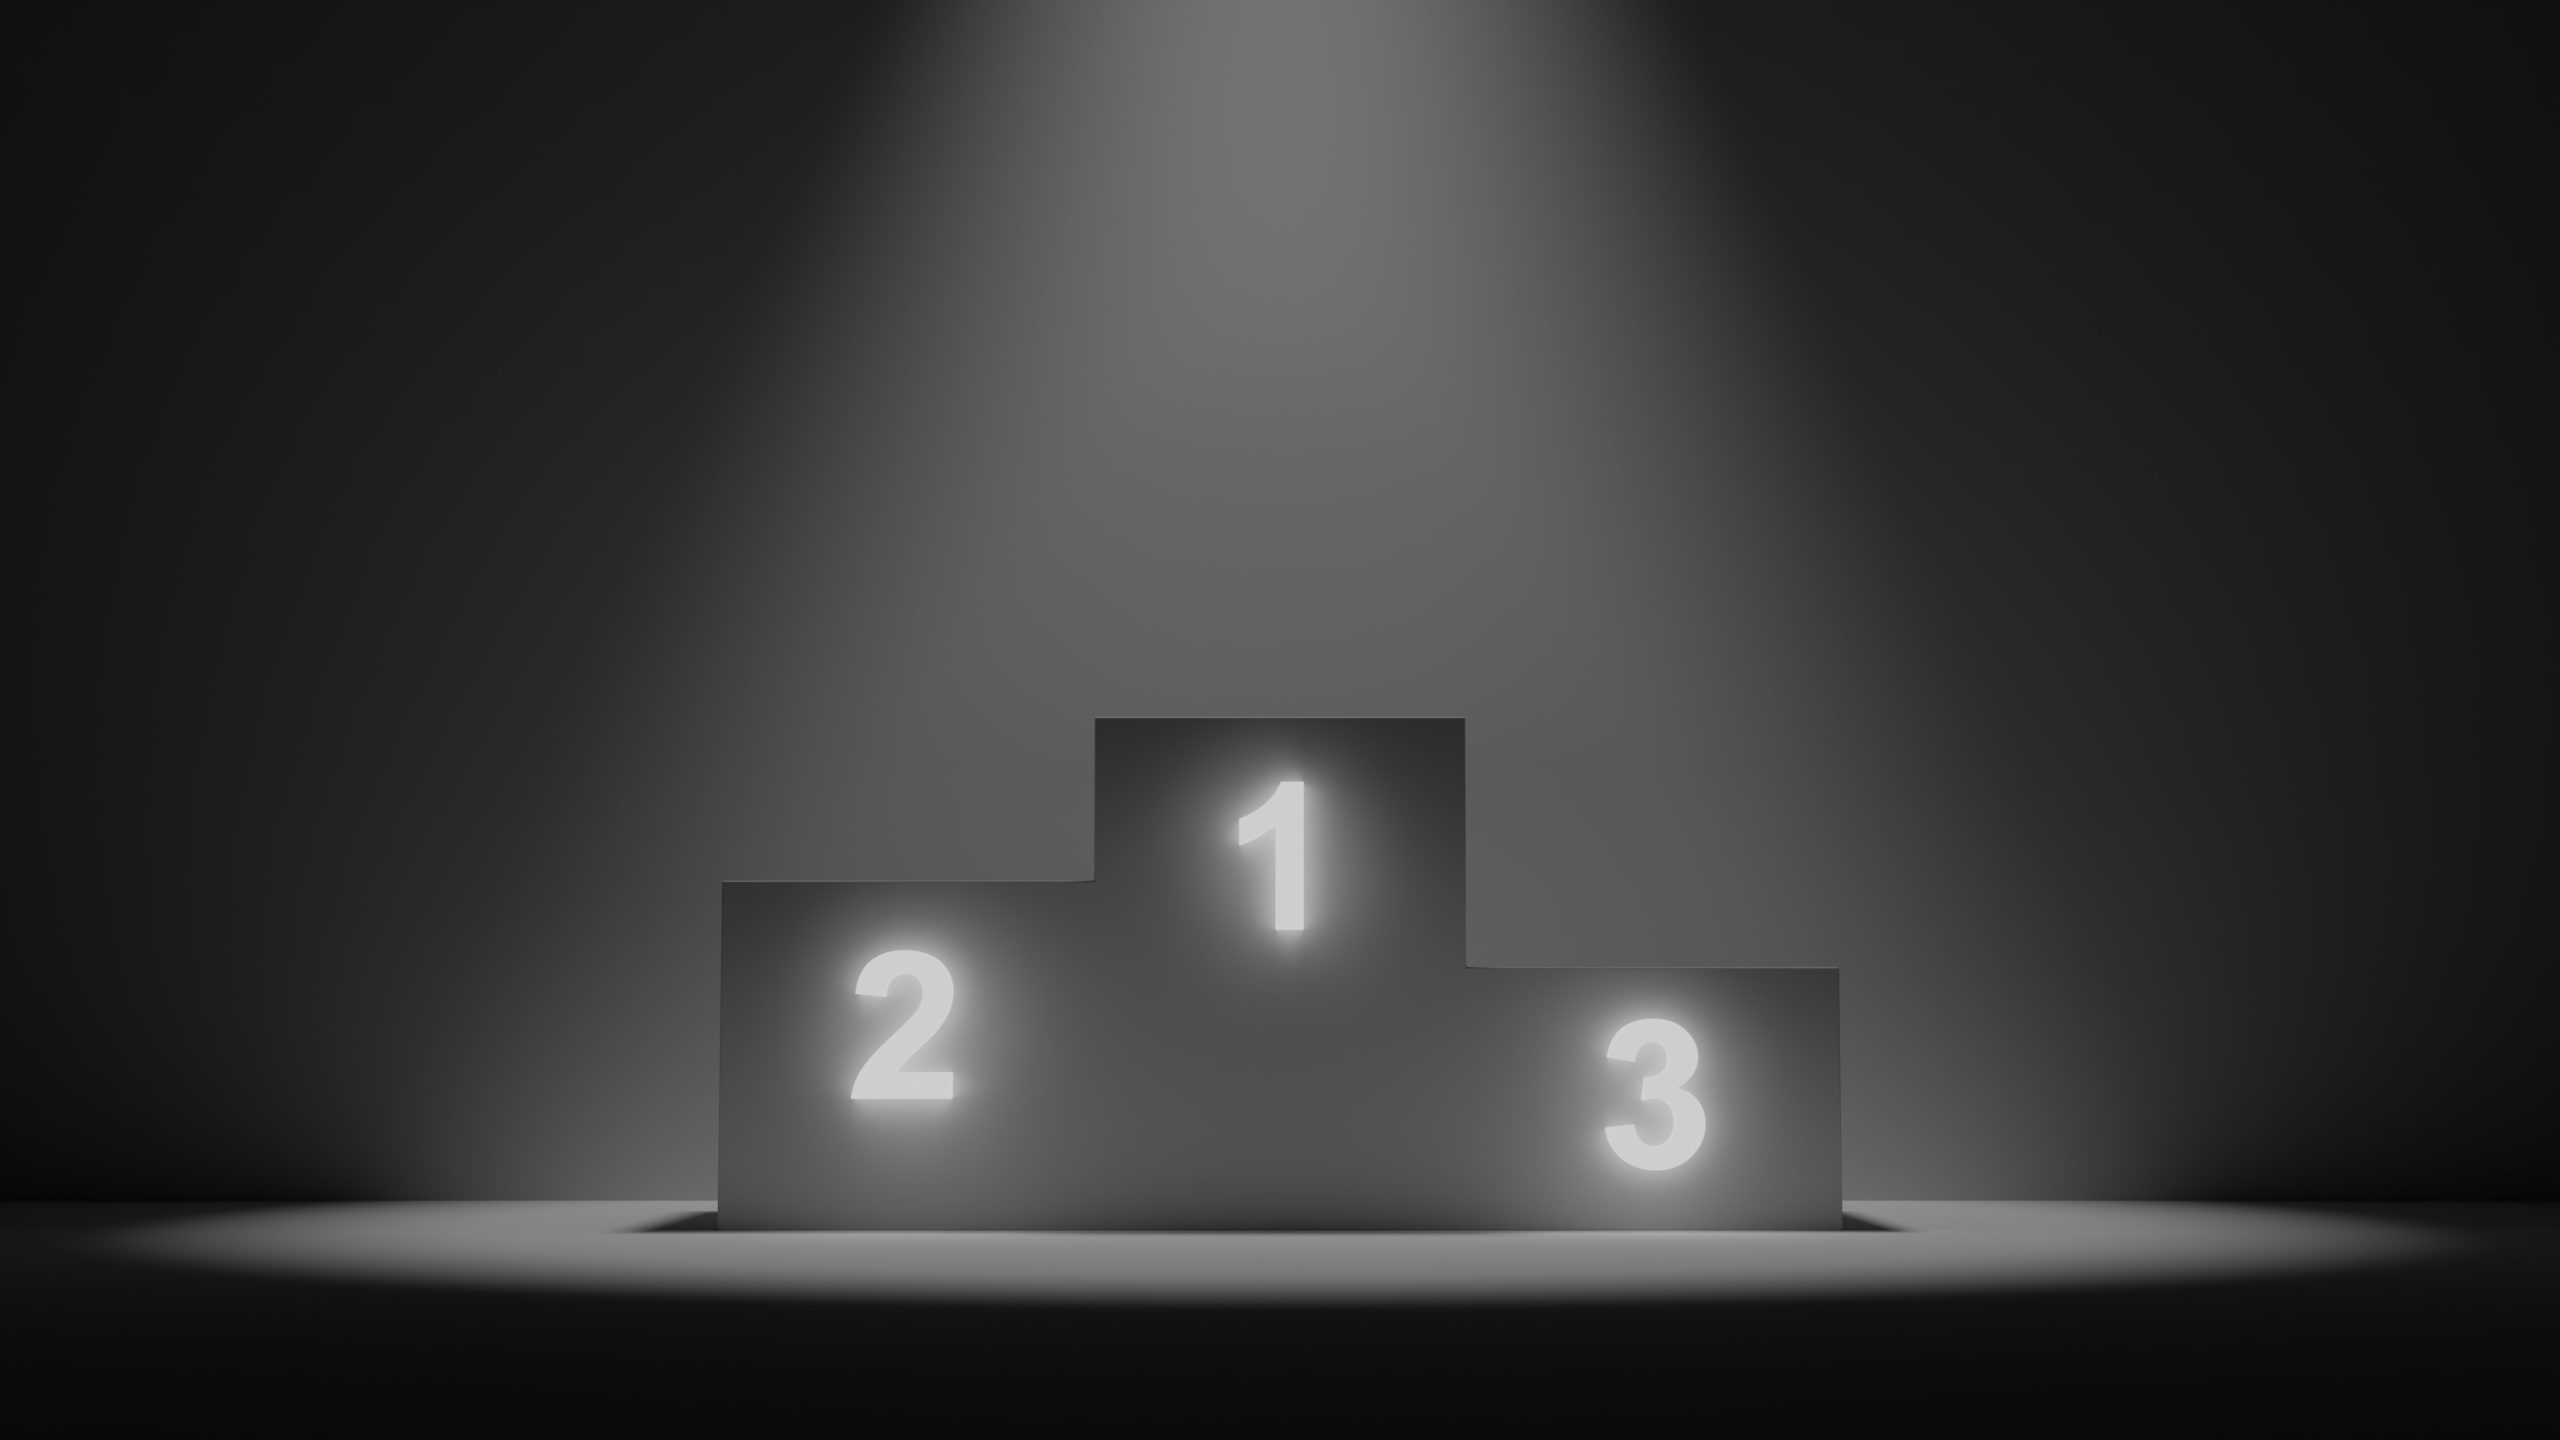 spotlight on a winner ranking stage with lighted numbers, one, two, and three.